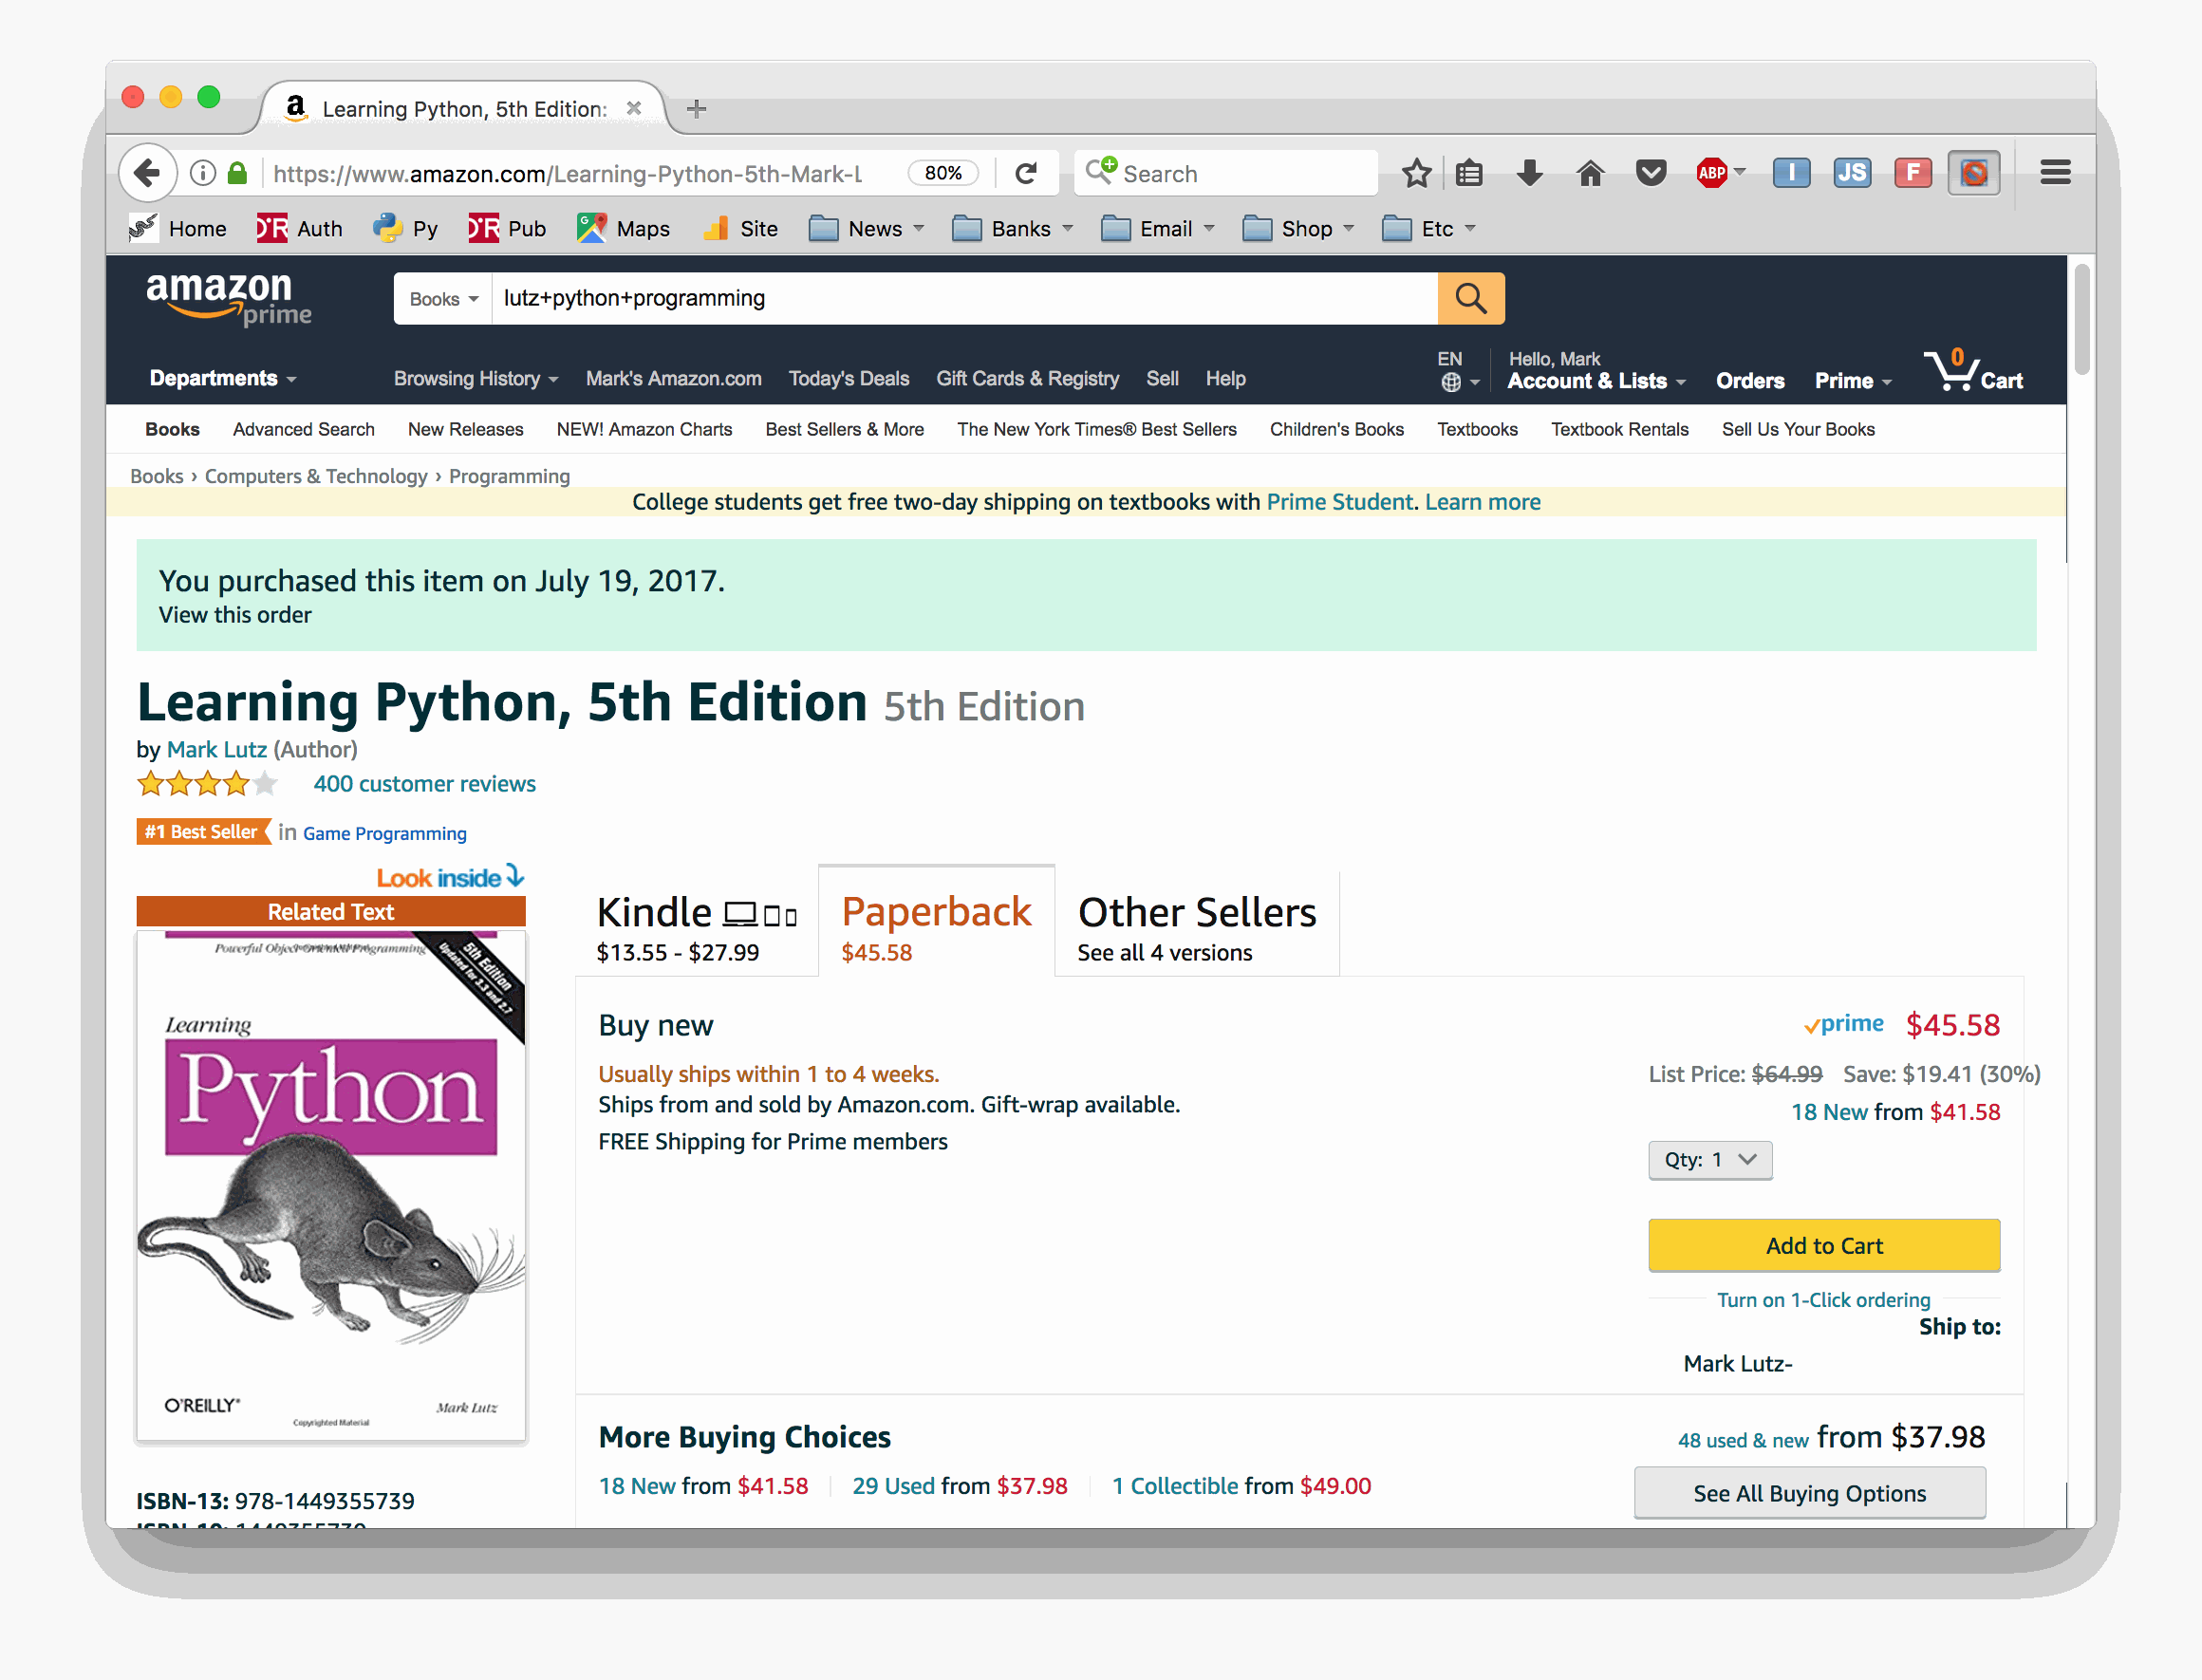 Teaching python by mark lutz entire month of november at a time when demand was surging another of my books fared even worse in this period being unavailable in print for over two fandeluxe